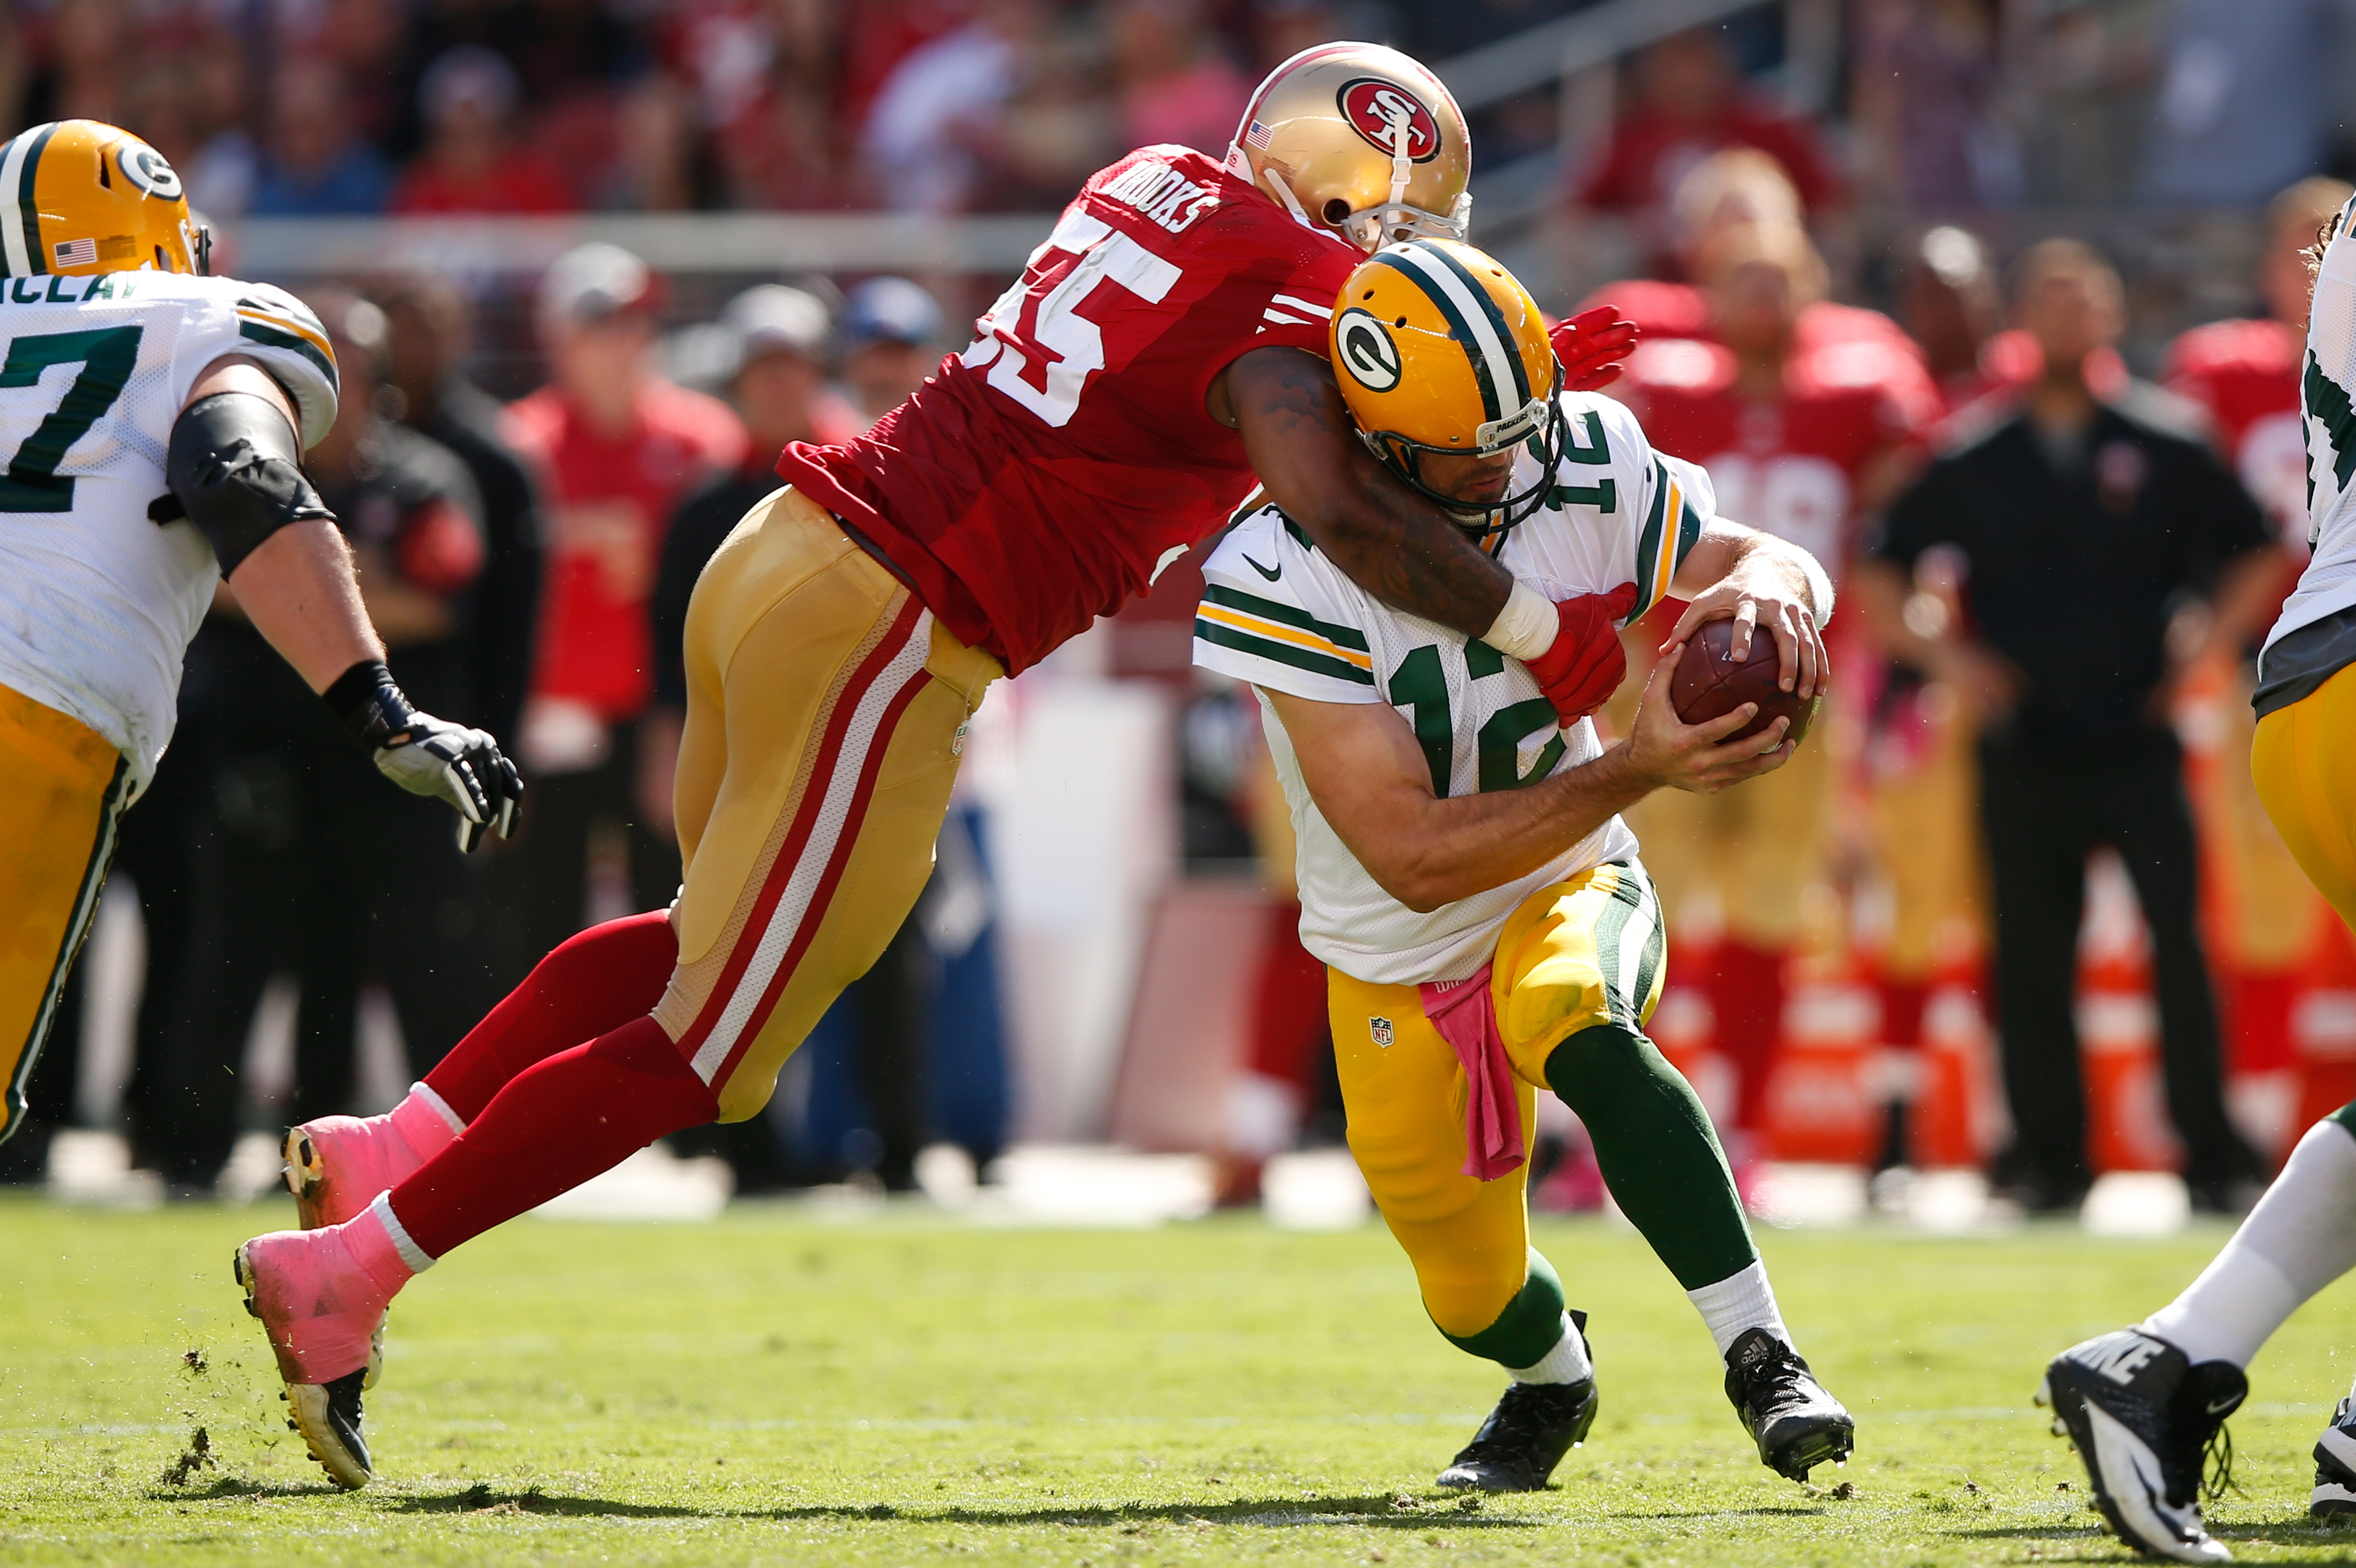 GREEN BAY PACKERS VS. SAN FRANCISCO 49ERS NFL LIVE STREAM